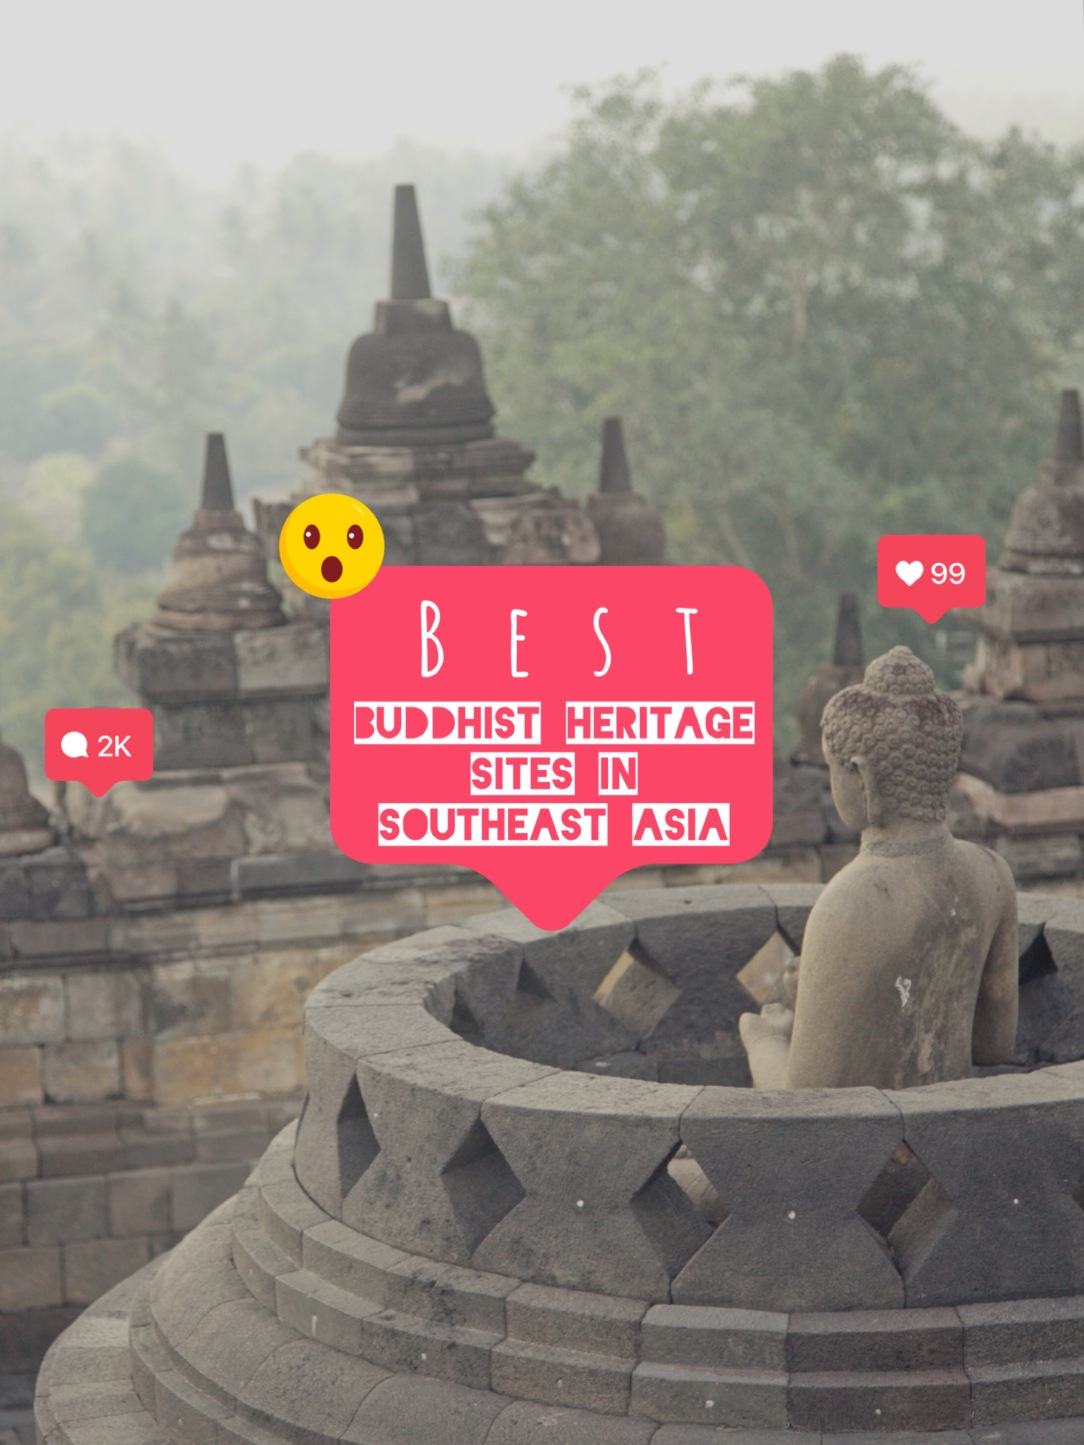 Best Buddhist Heritage Sites in Southeast Asia